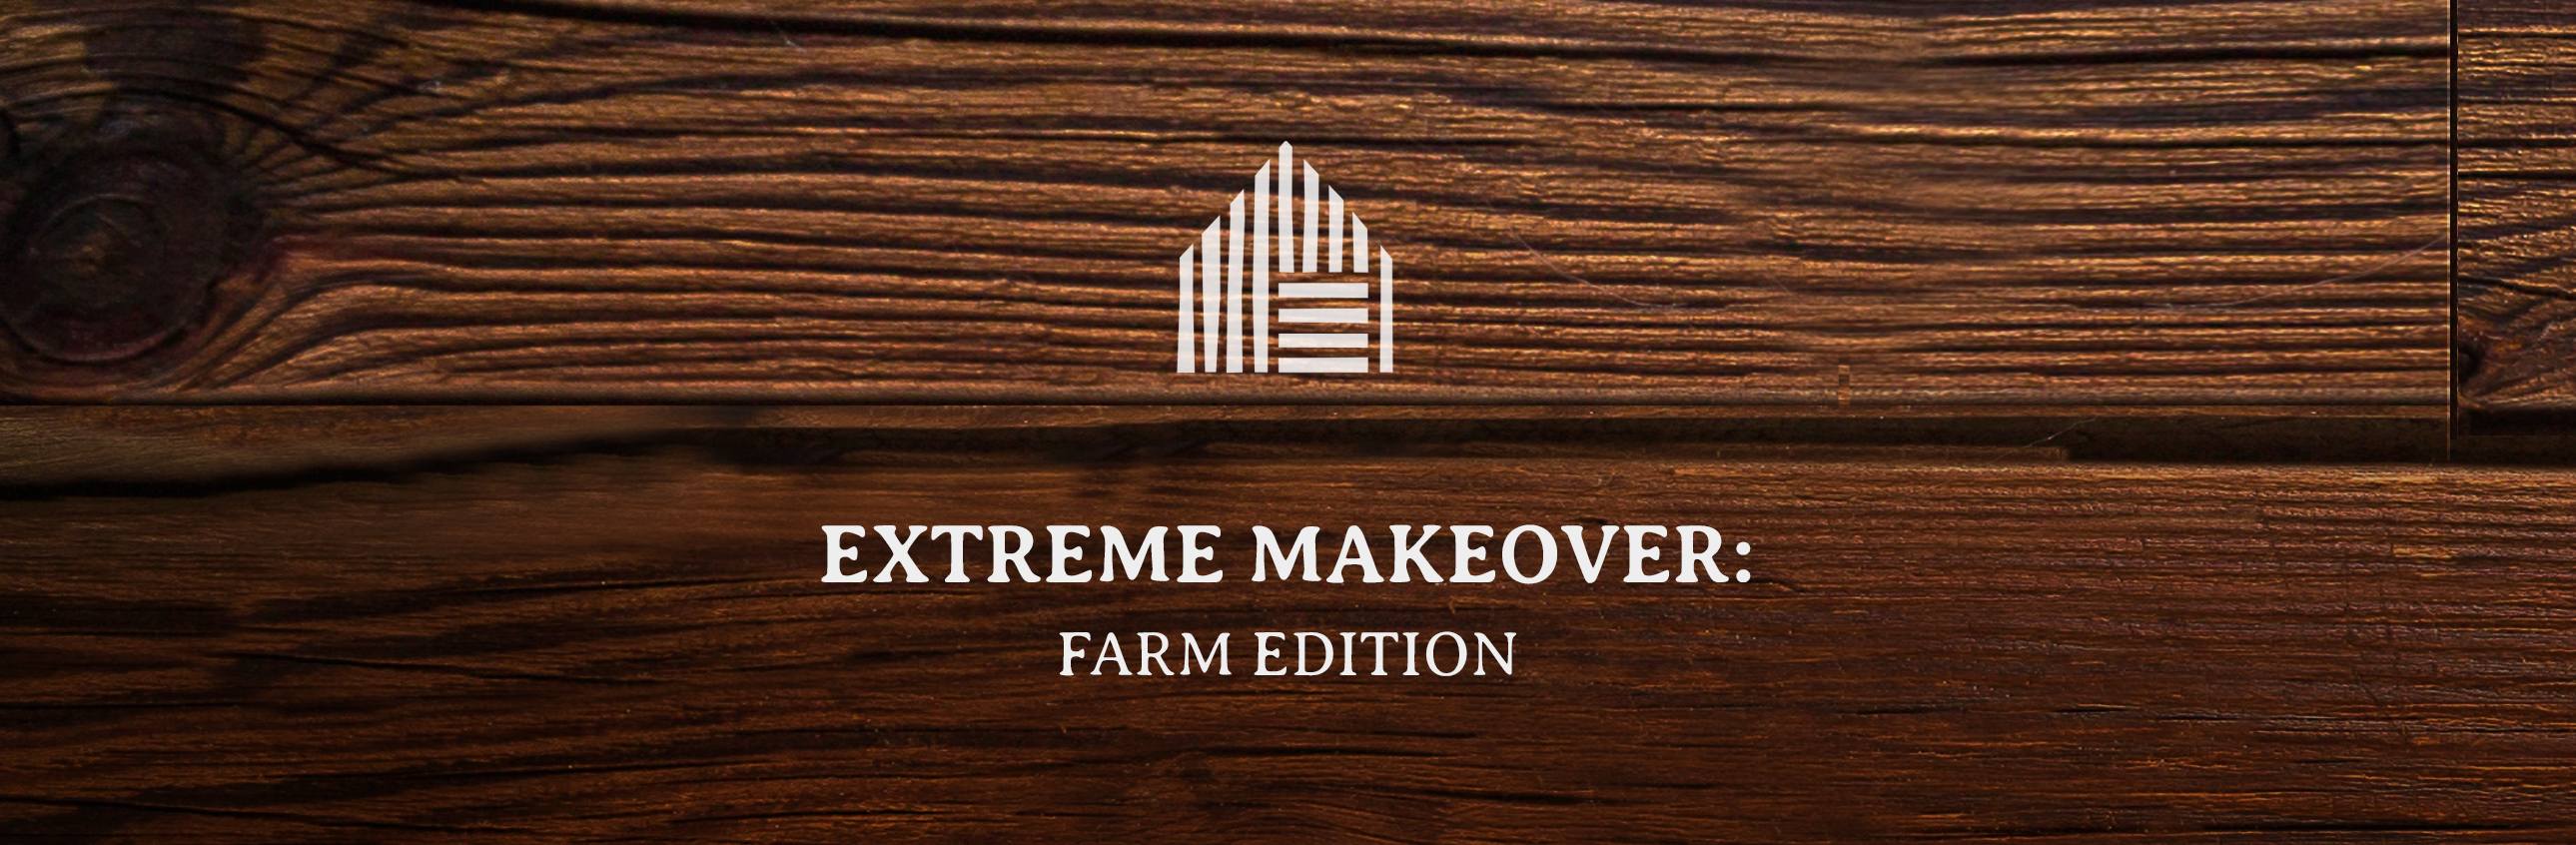 Extreme Makeover: Farm Edition